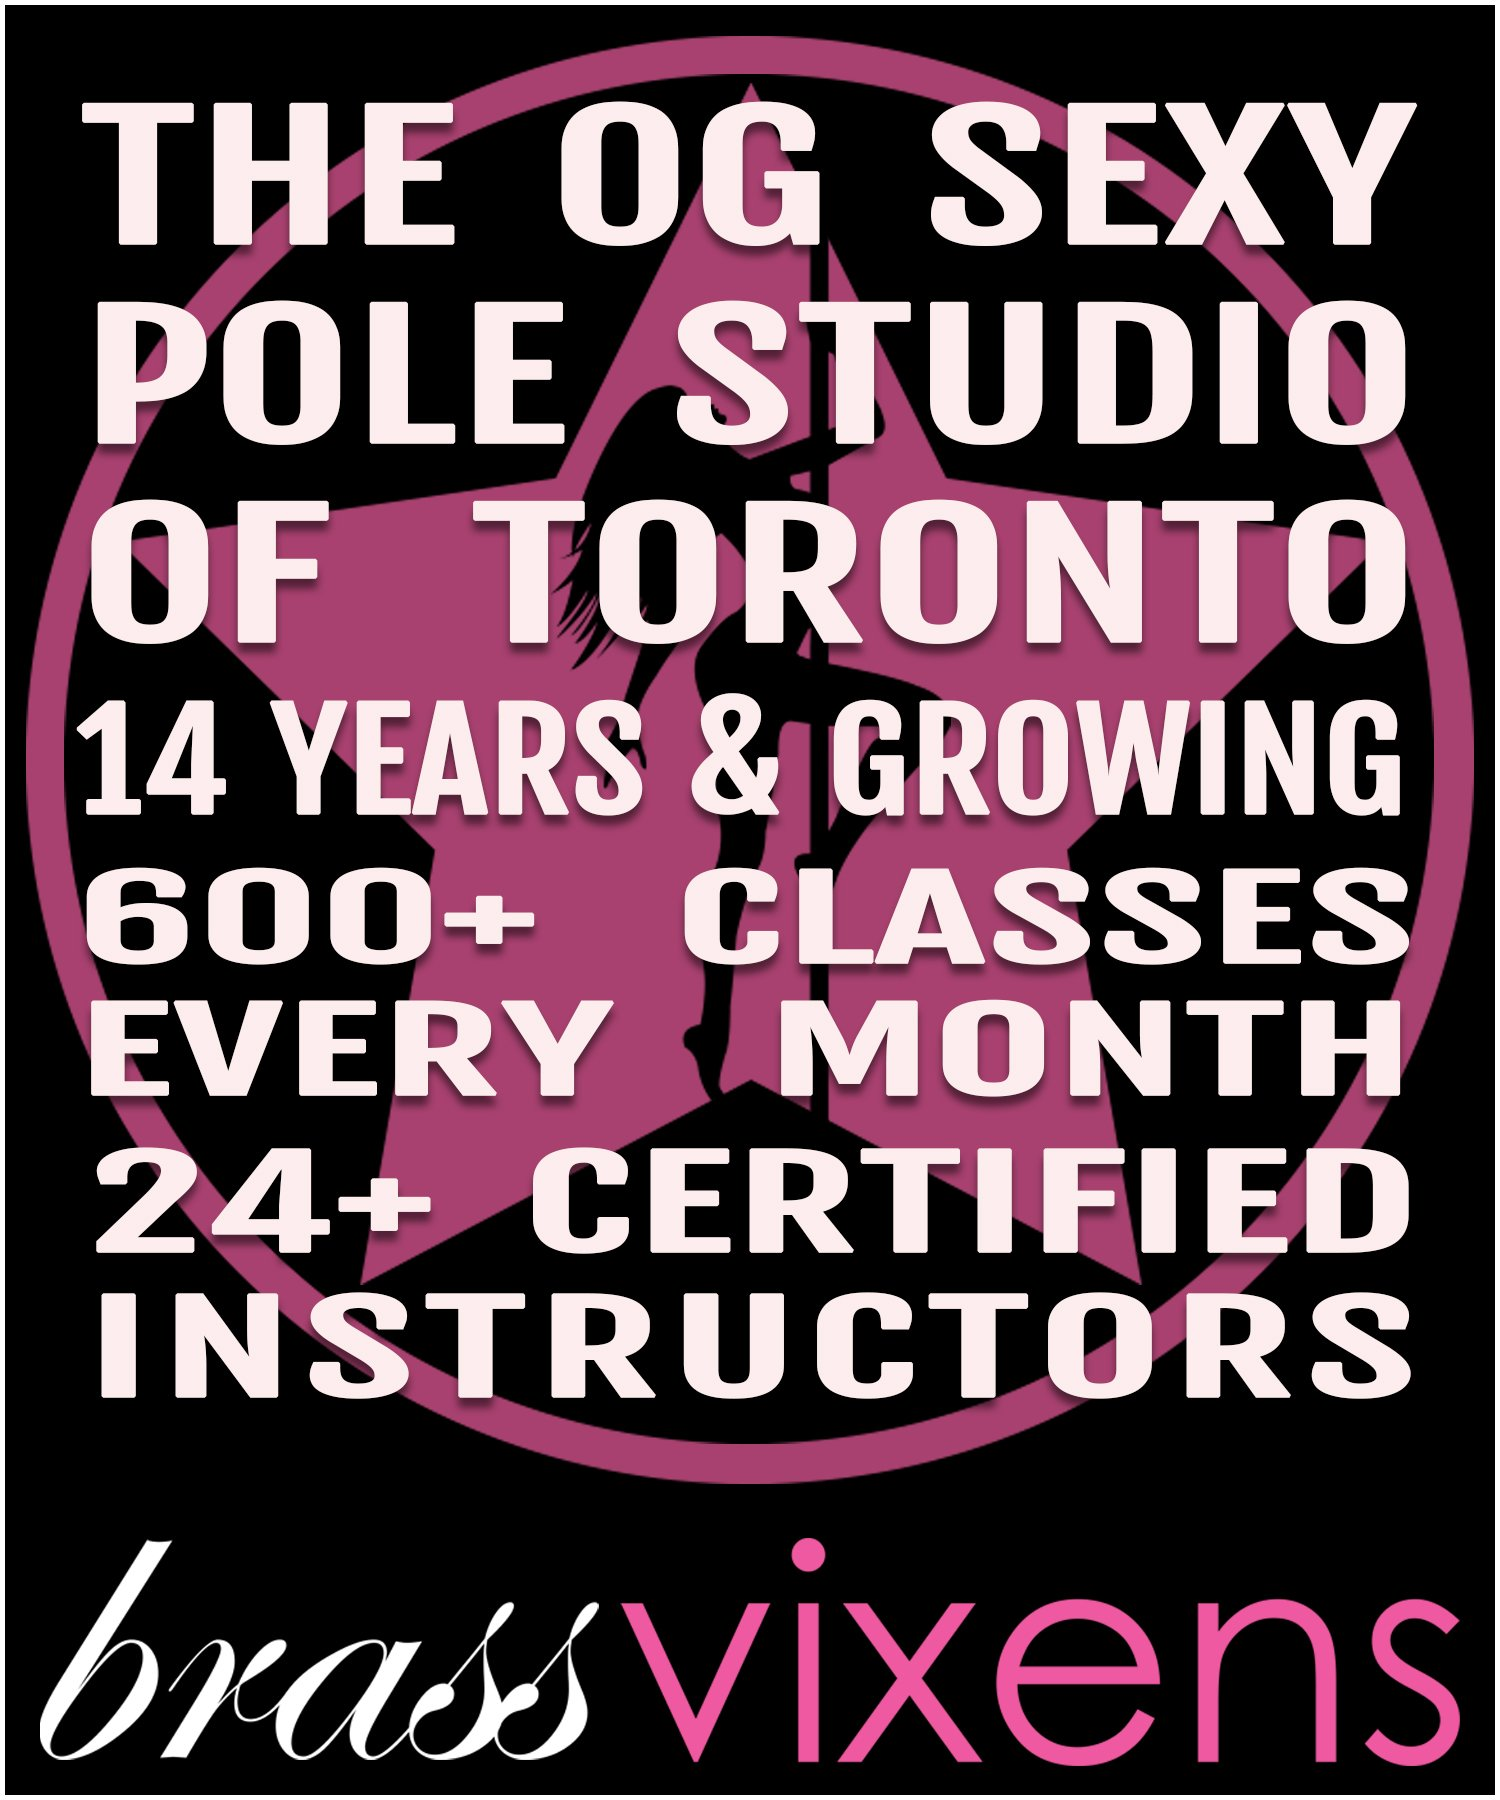 Brass Vixens Pole Dance Classes Toronto